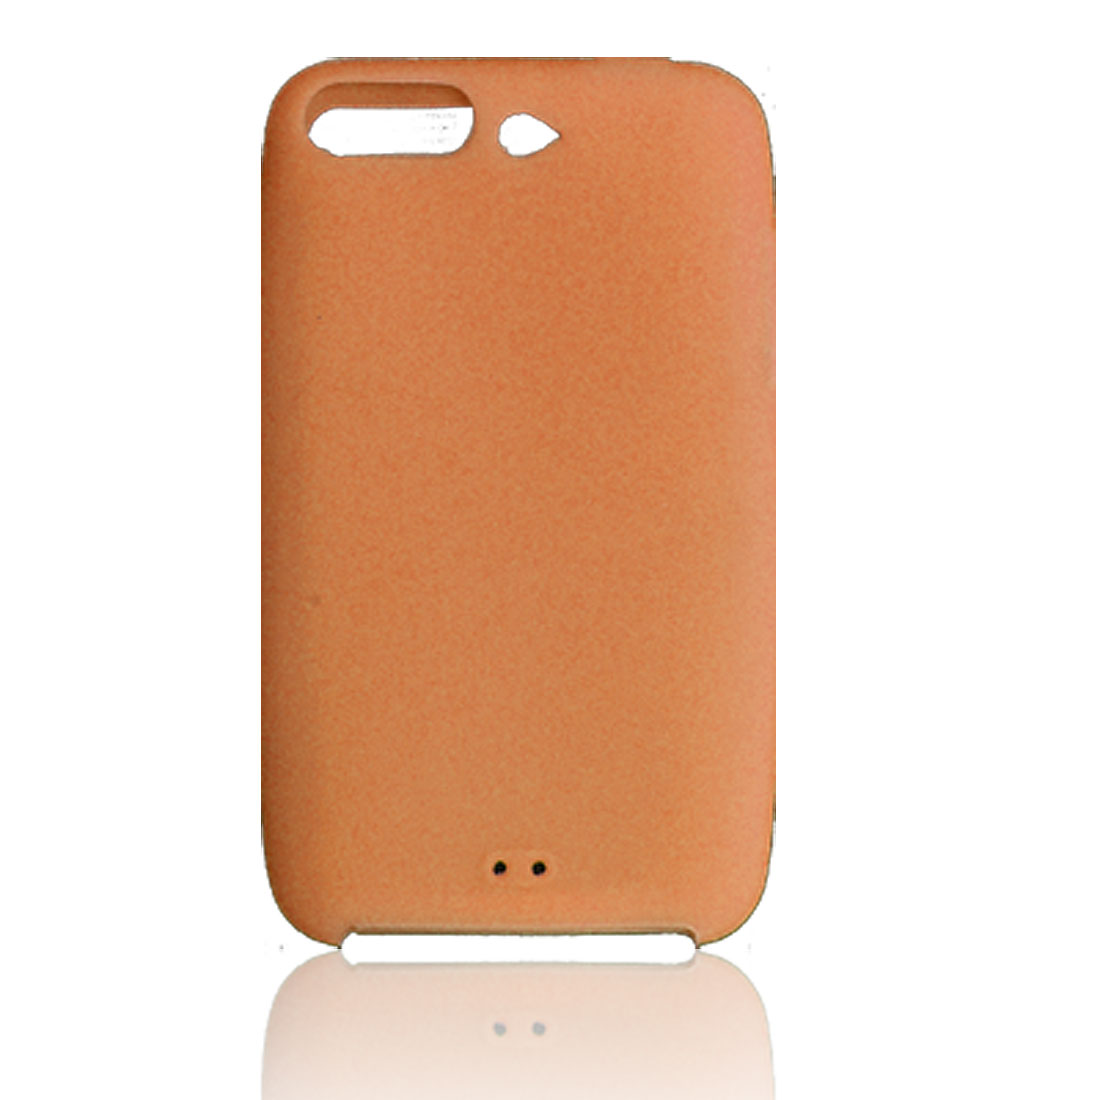 Silicone Skin Case Orange for iPod Touch 3rd Gen 3G